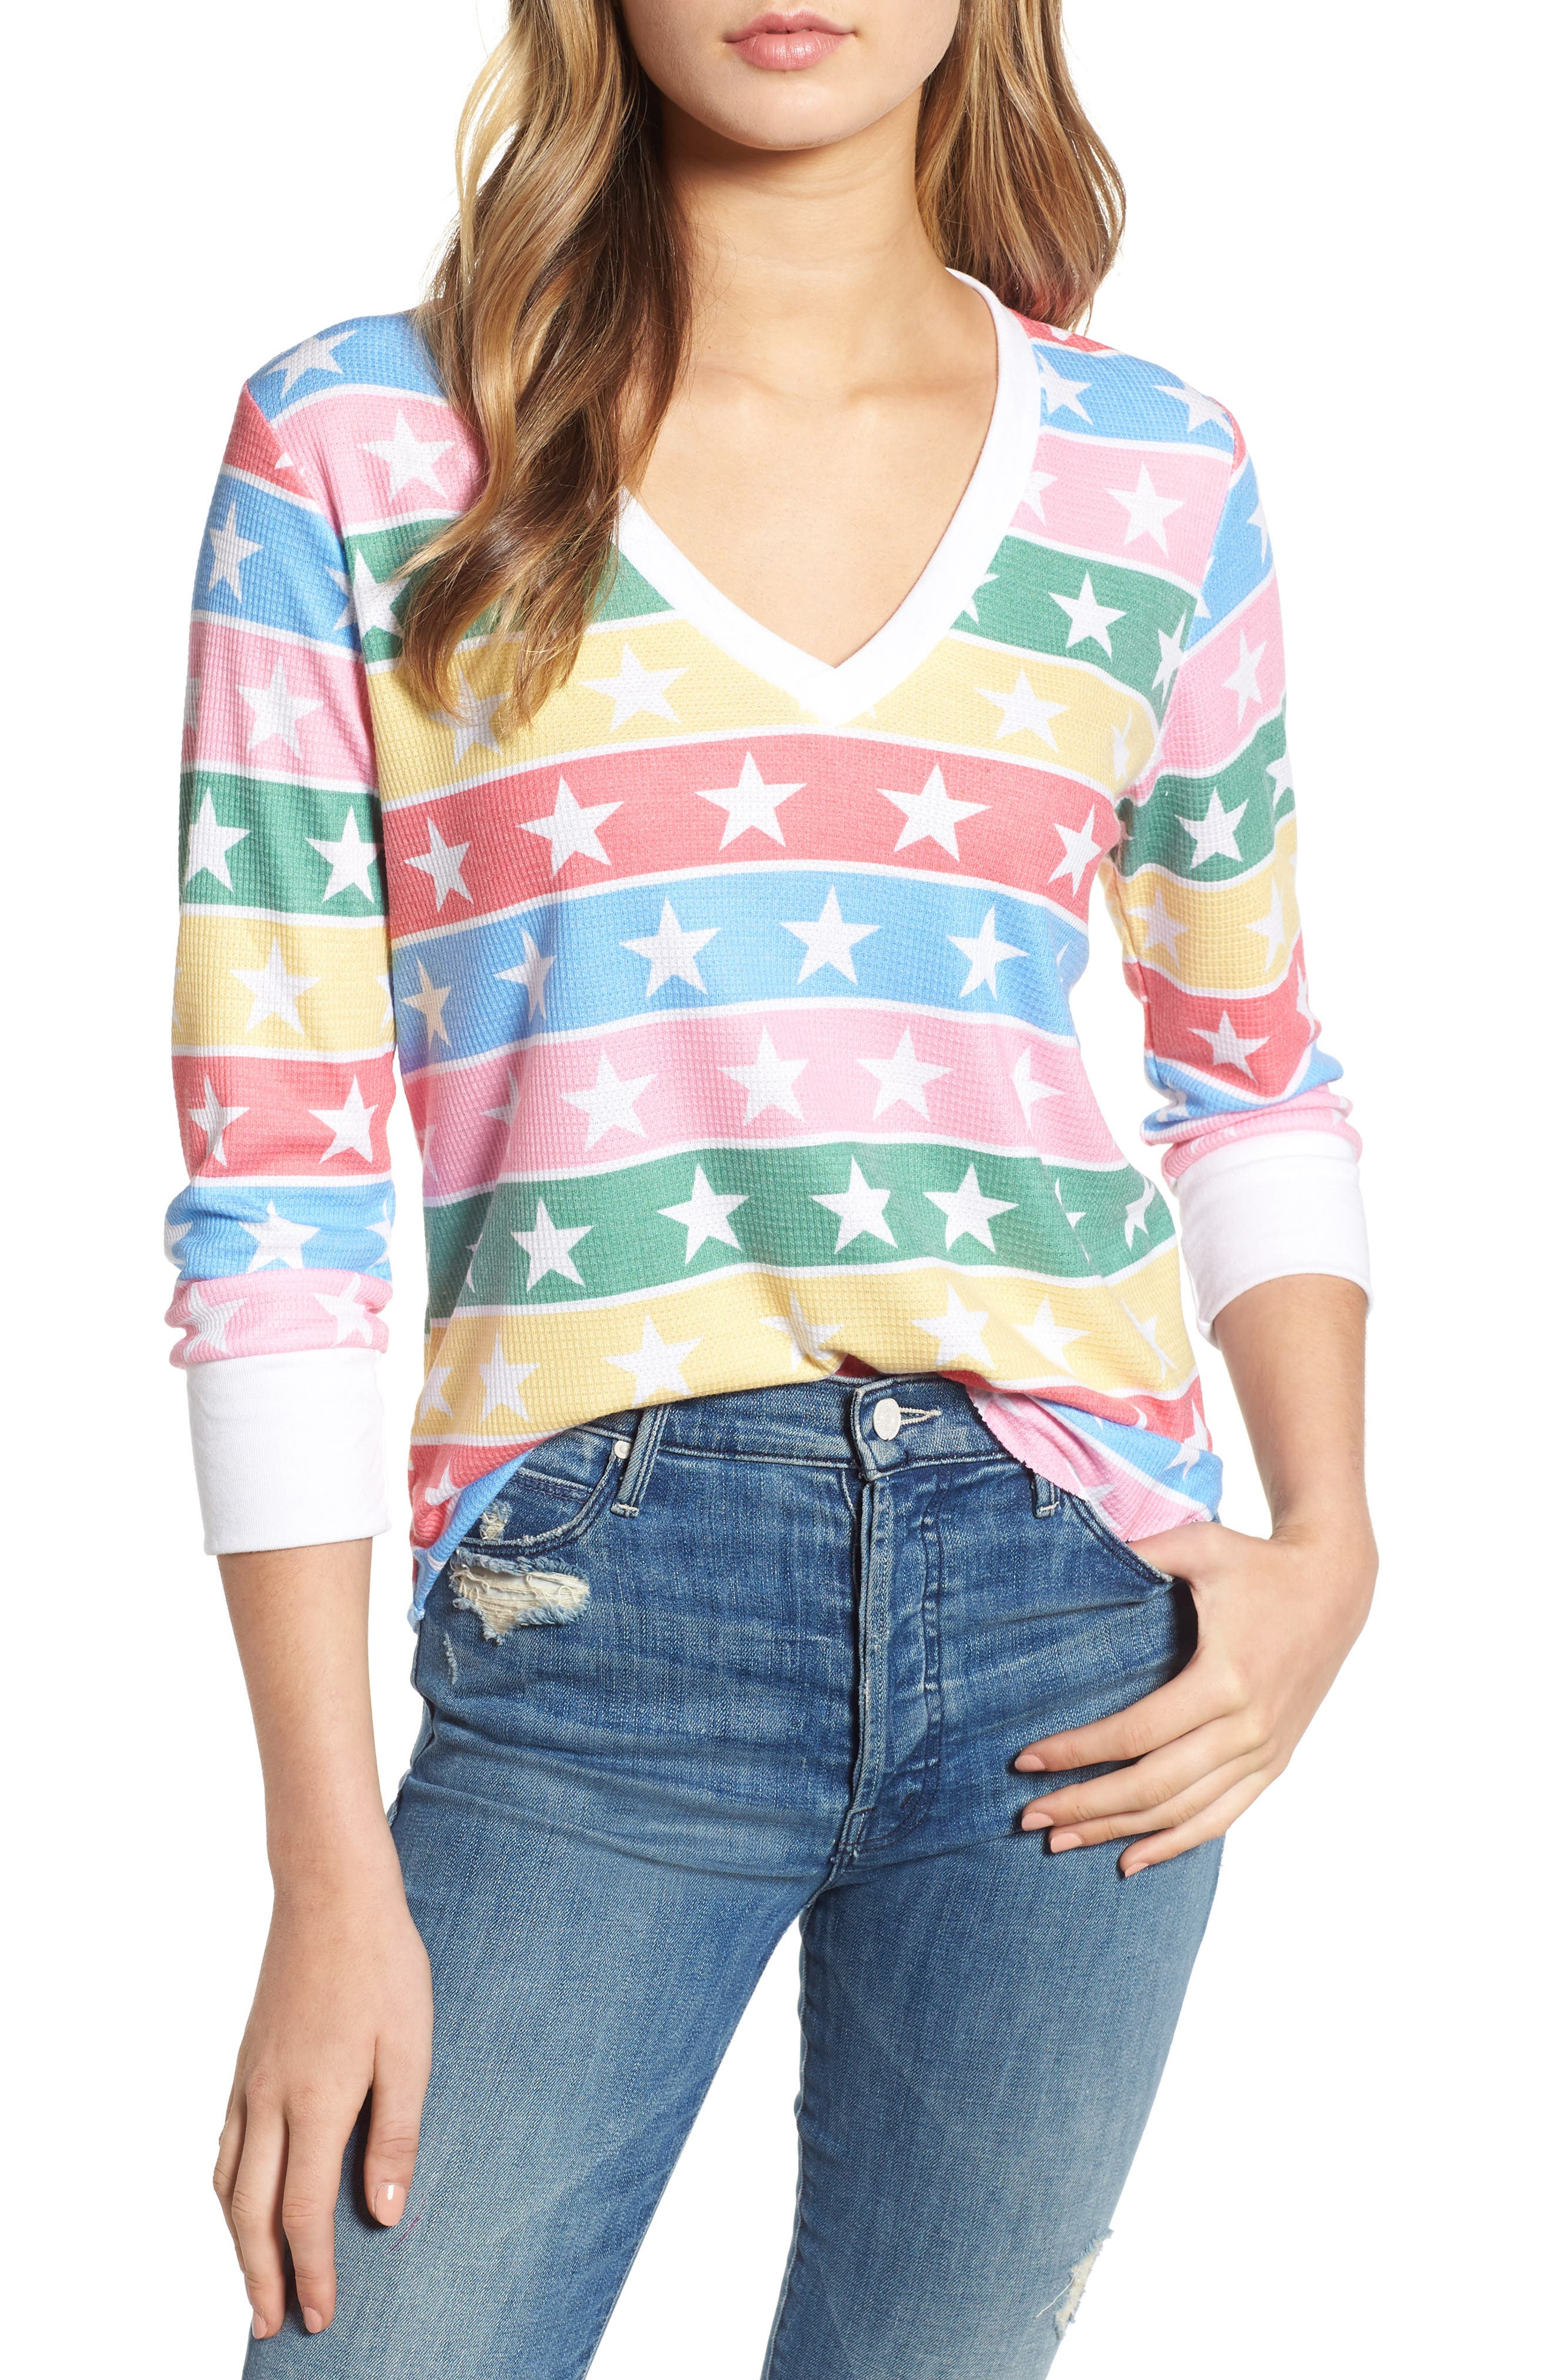 Leroy - Stellar Stripe Thermal Tee,                             Main thumbnail 1, color,                             MULTI/ CLEAN WHITE